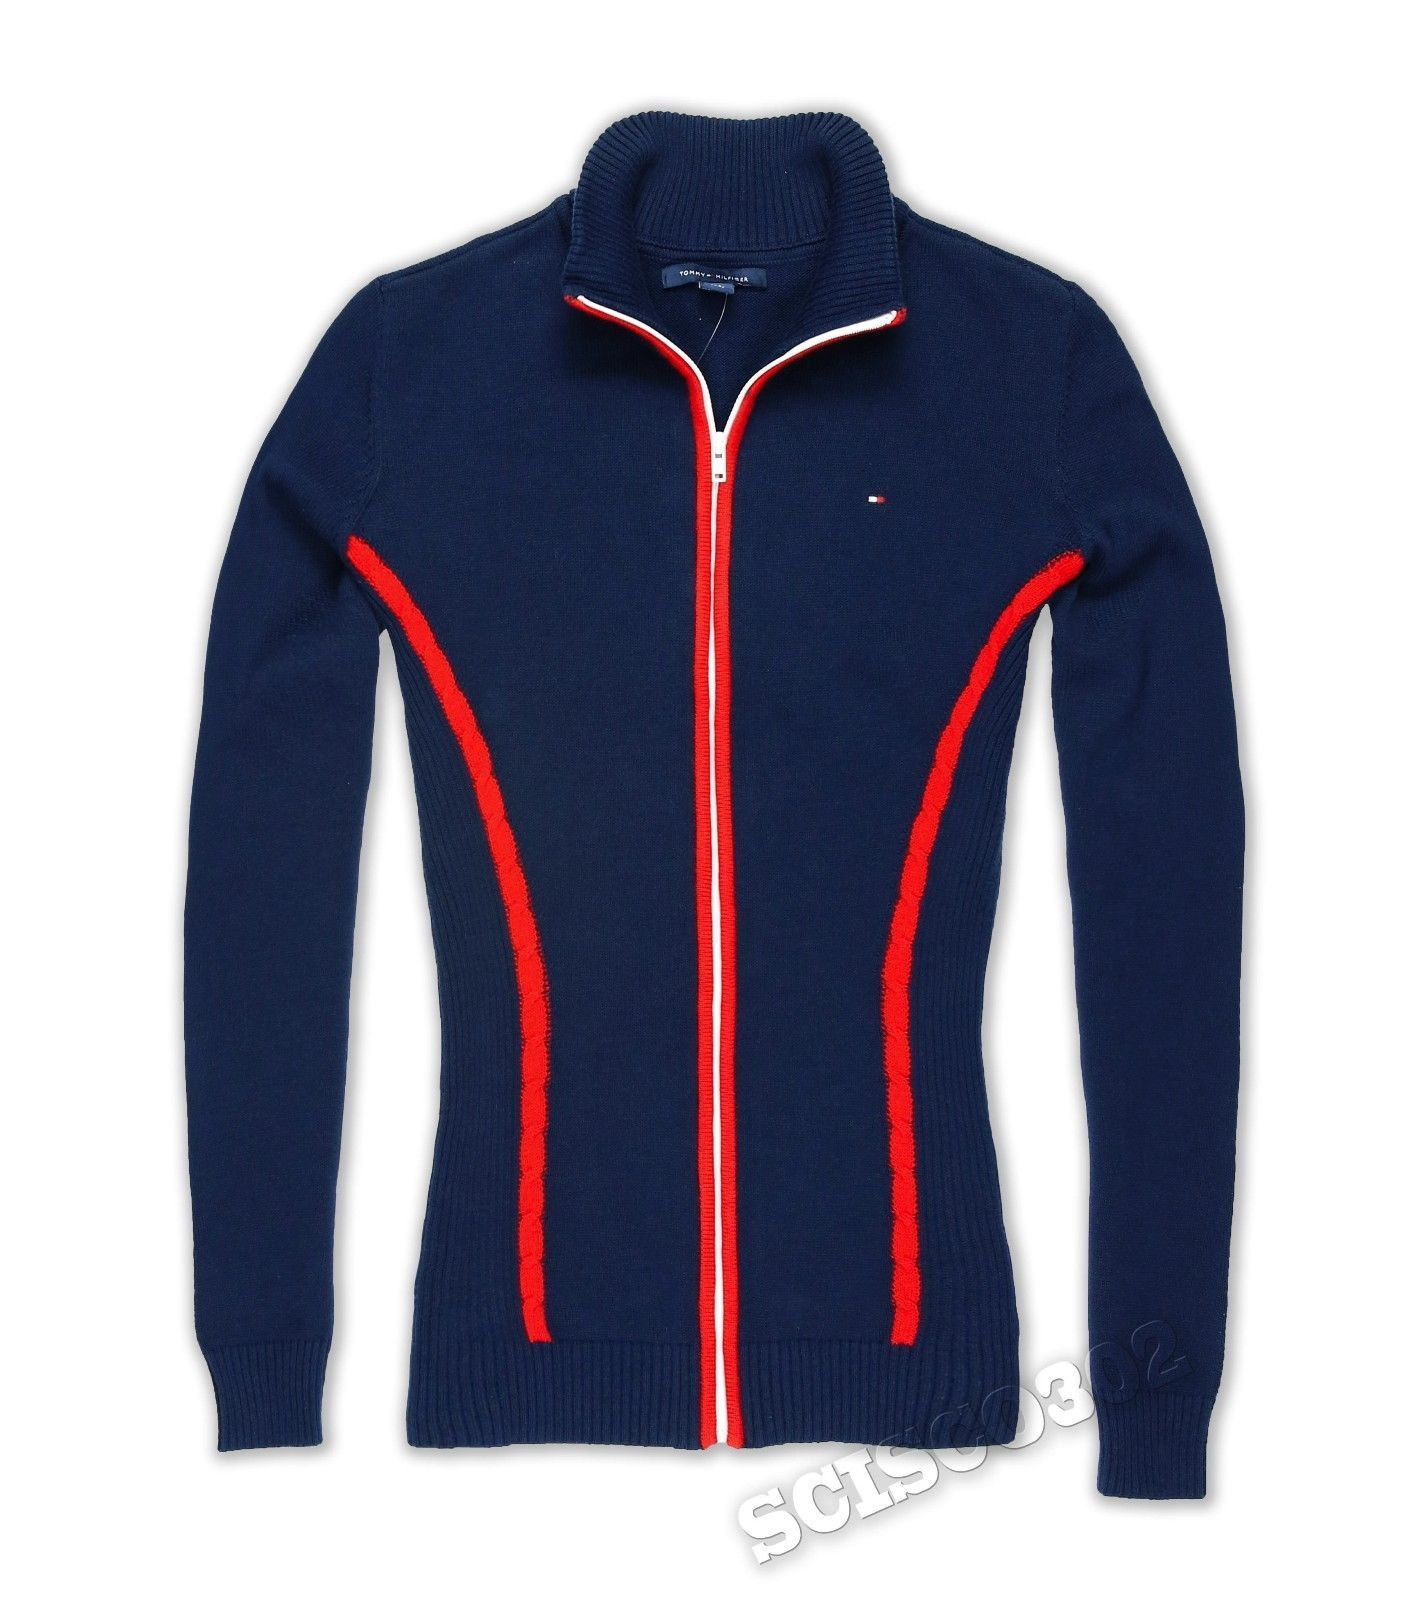 Womens Tommy Hilfiger Sweater Full Zip Navy Blue | women's ...